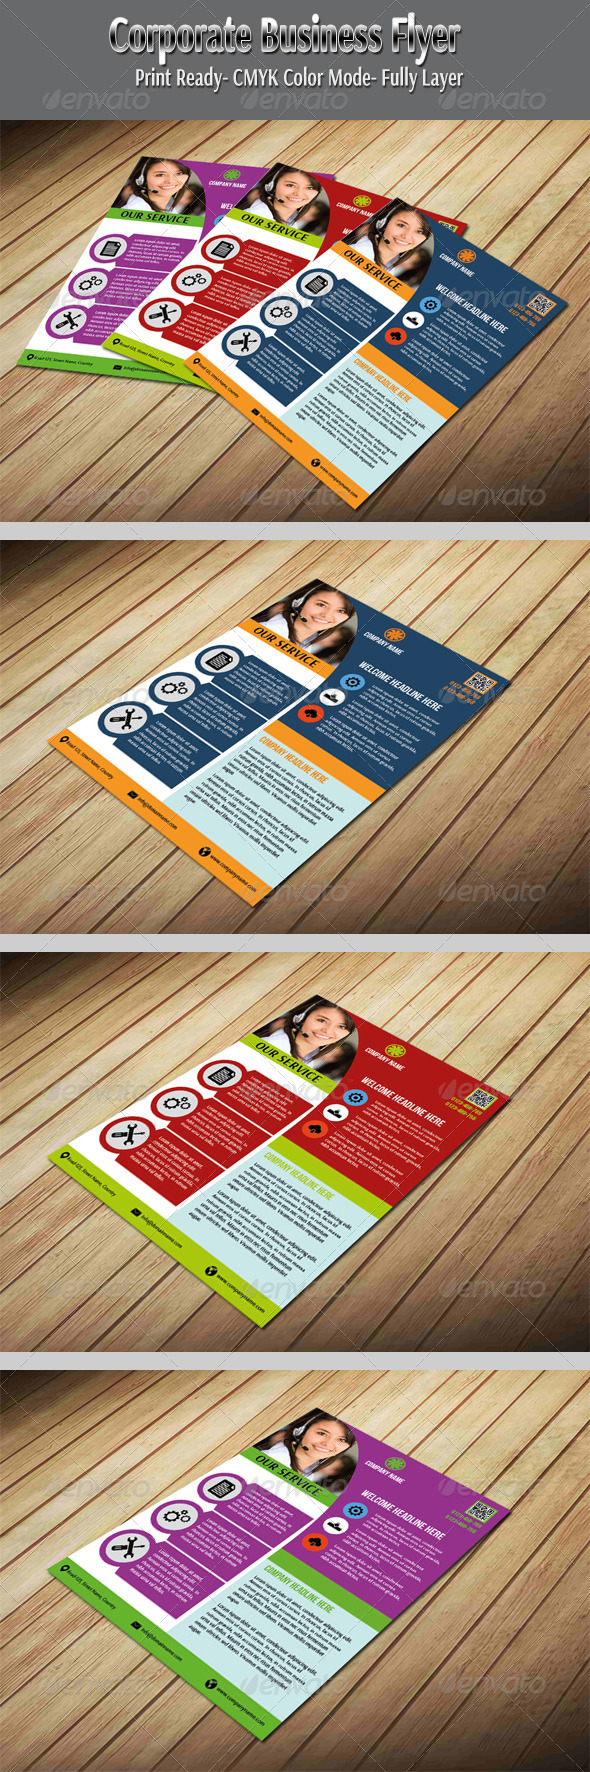 GraphicRiver Corporate Business Flyer 5715590